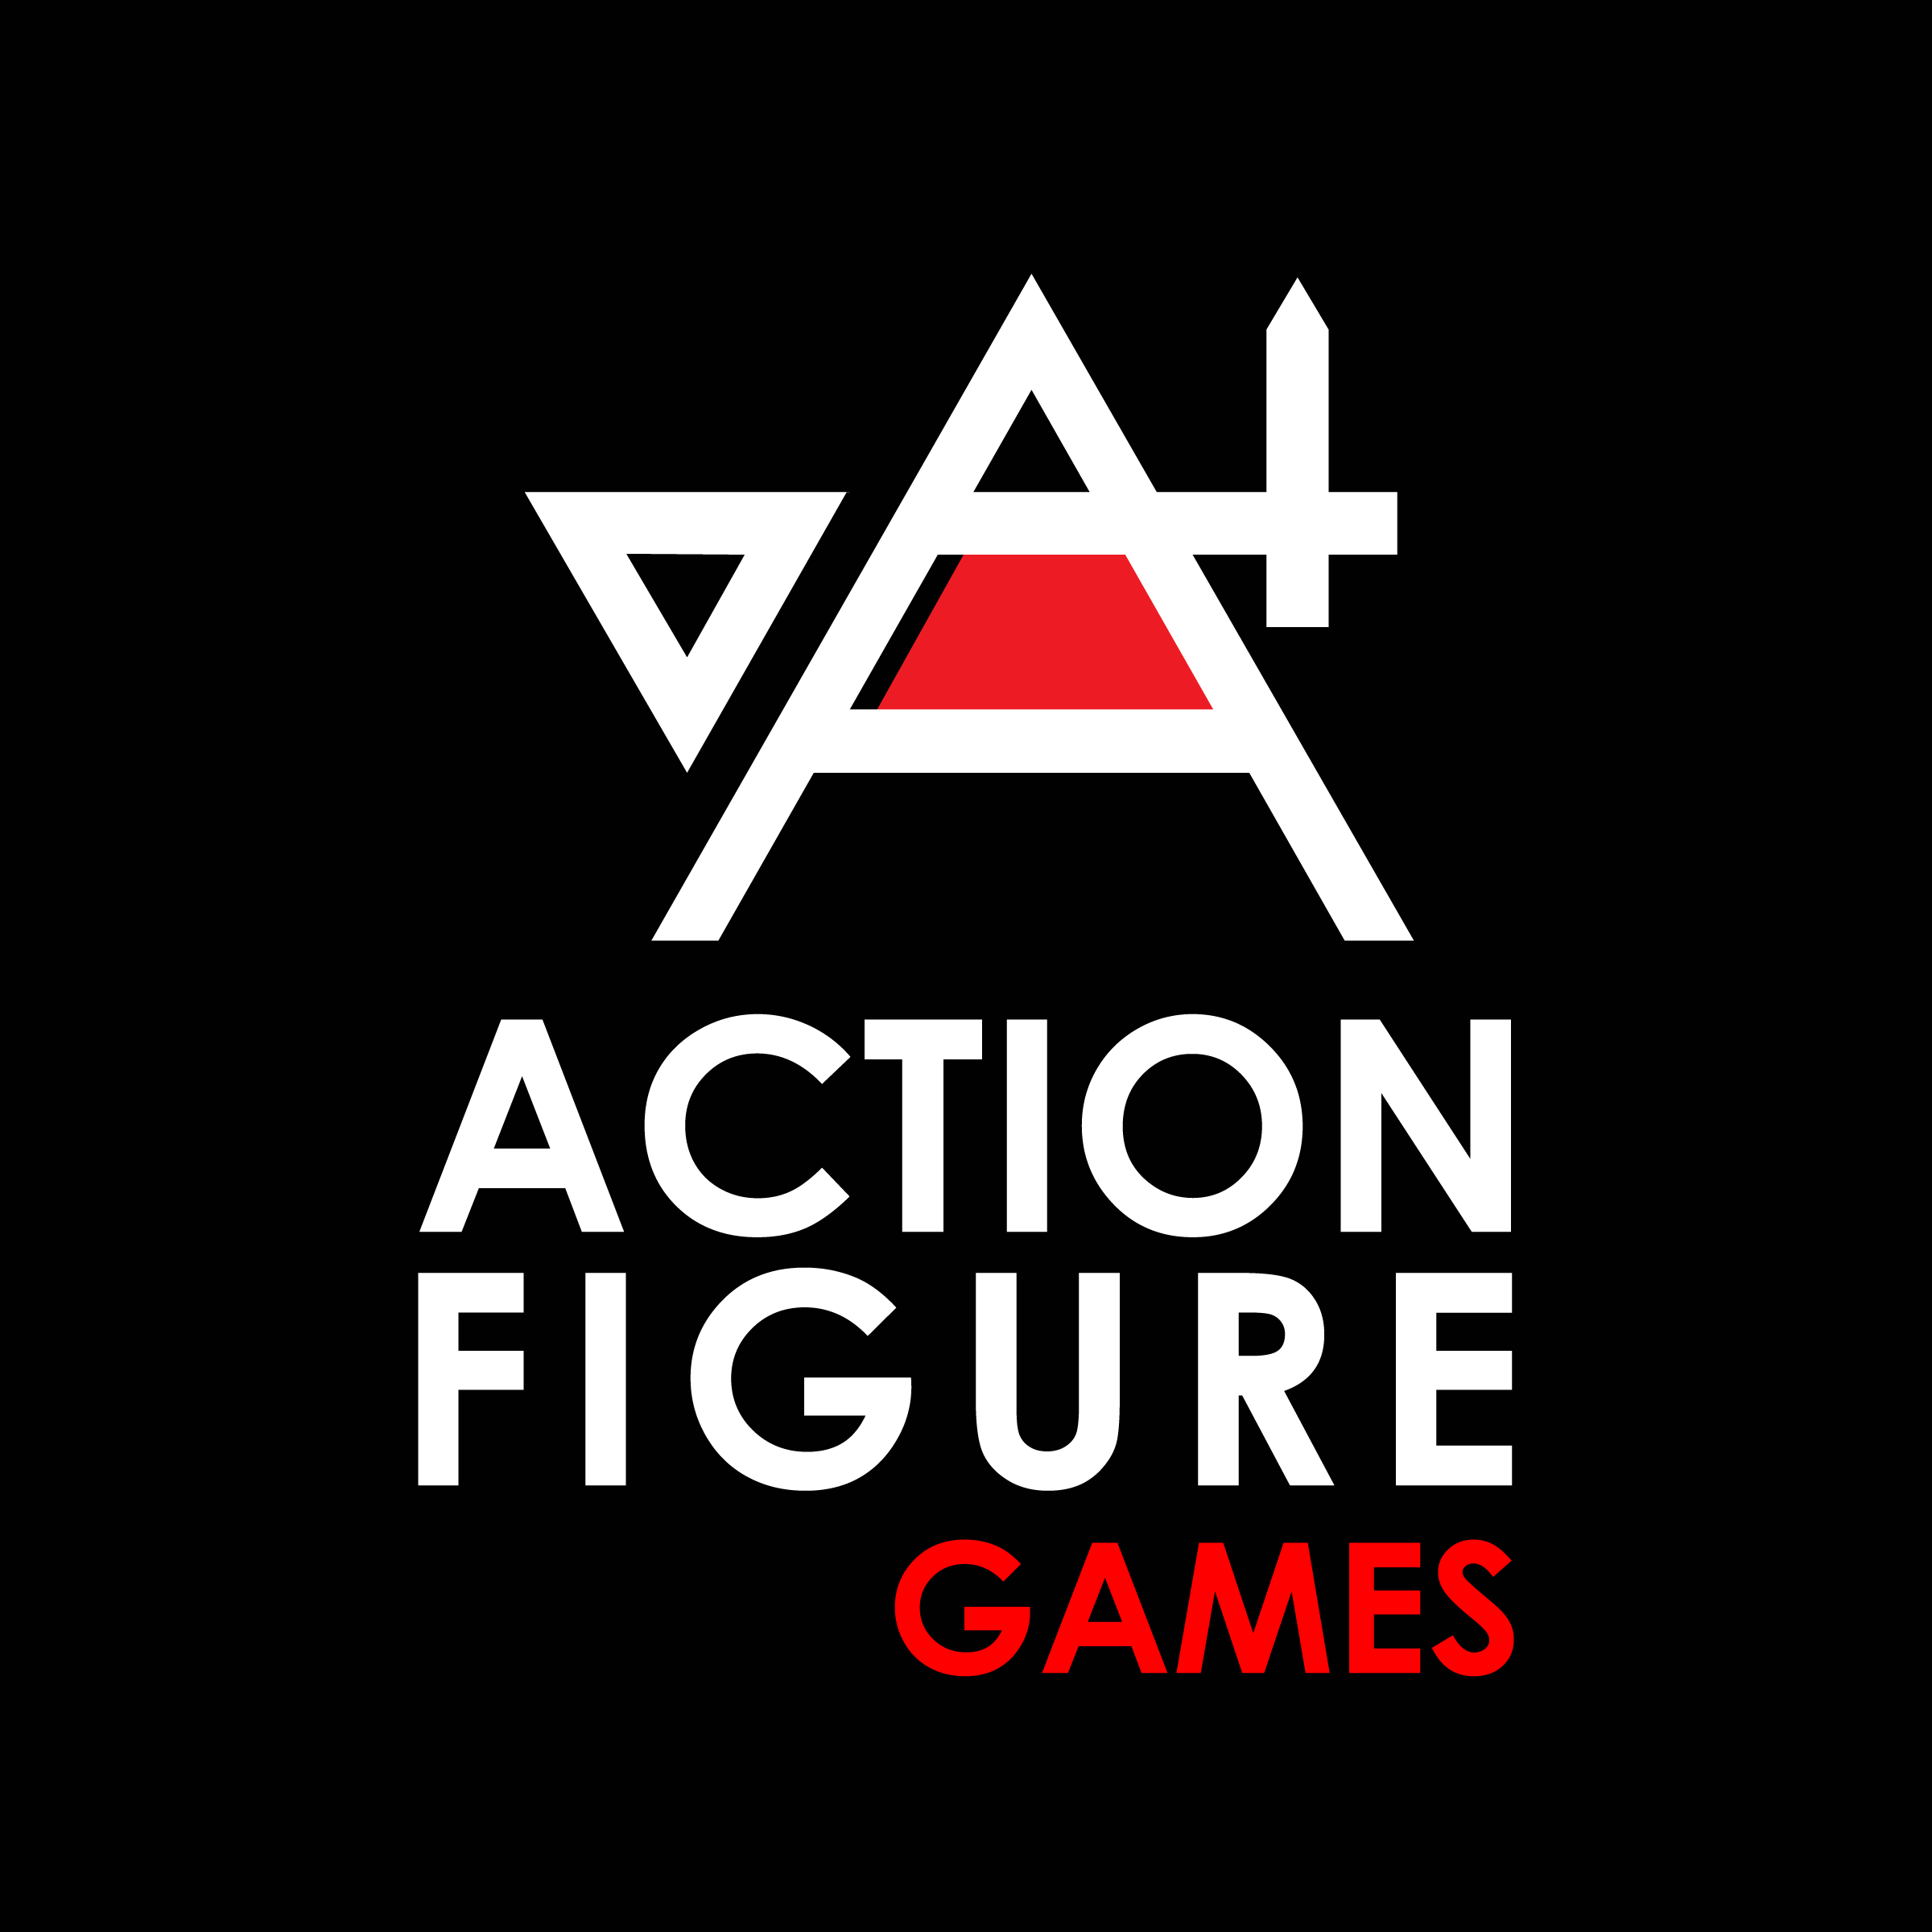 Action Figure Games